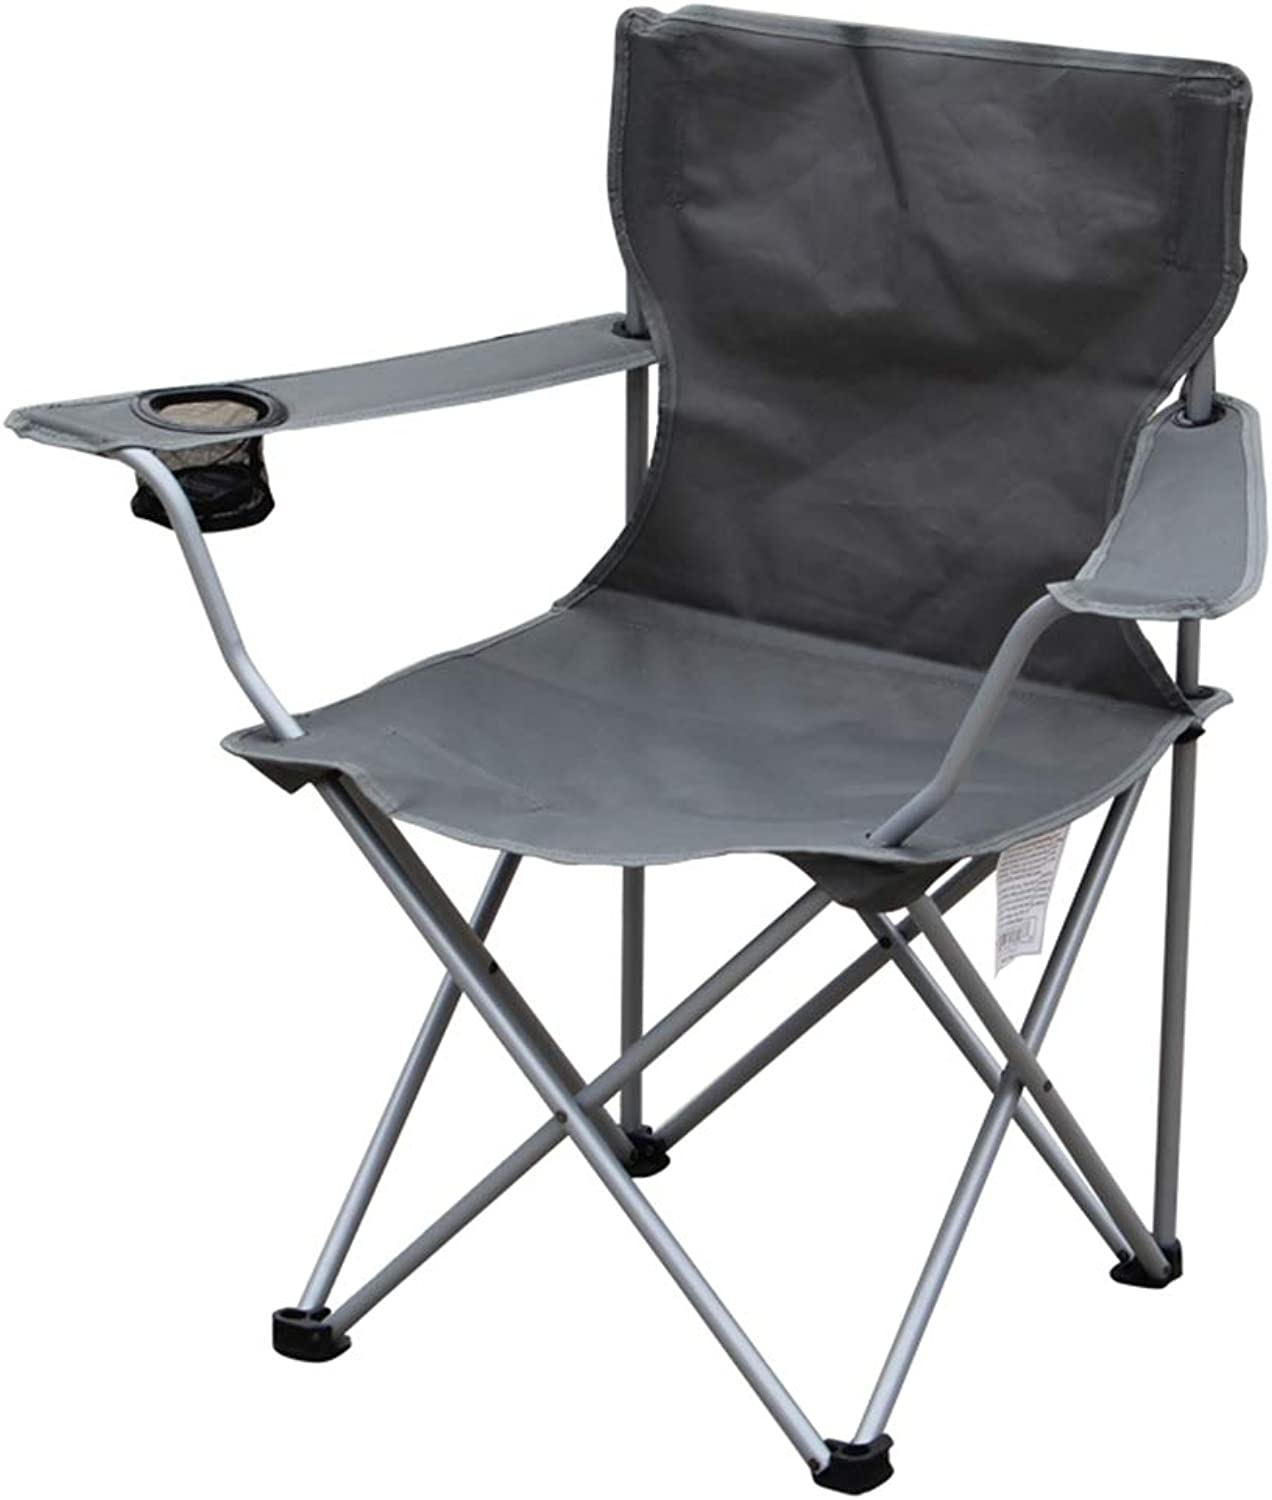 Director's Chair Folding Breathable Mesh Aluminum Camping Fishing Garden Chair Portable,Quick Set up and fold Down,Versatility